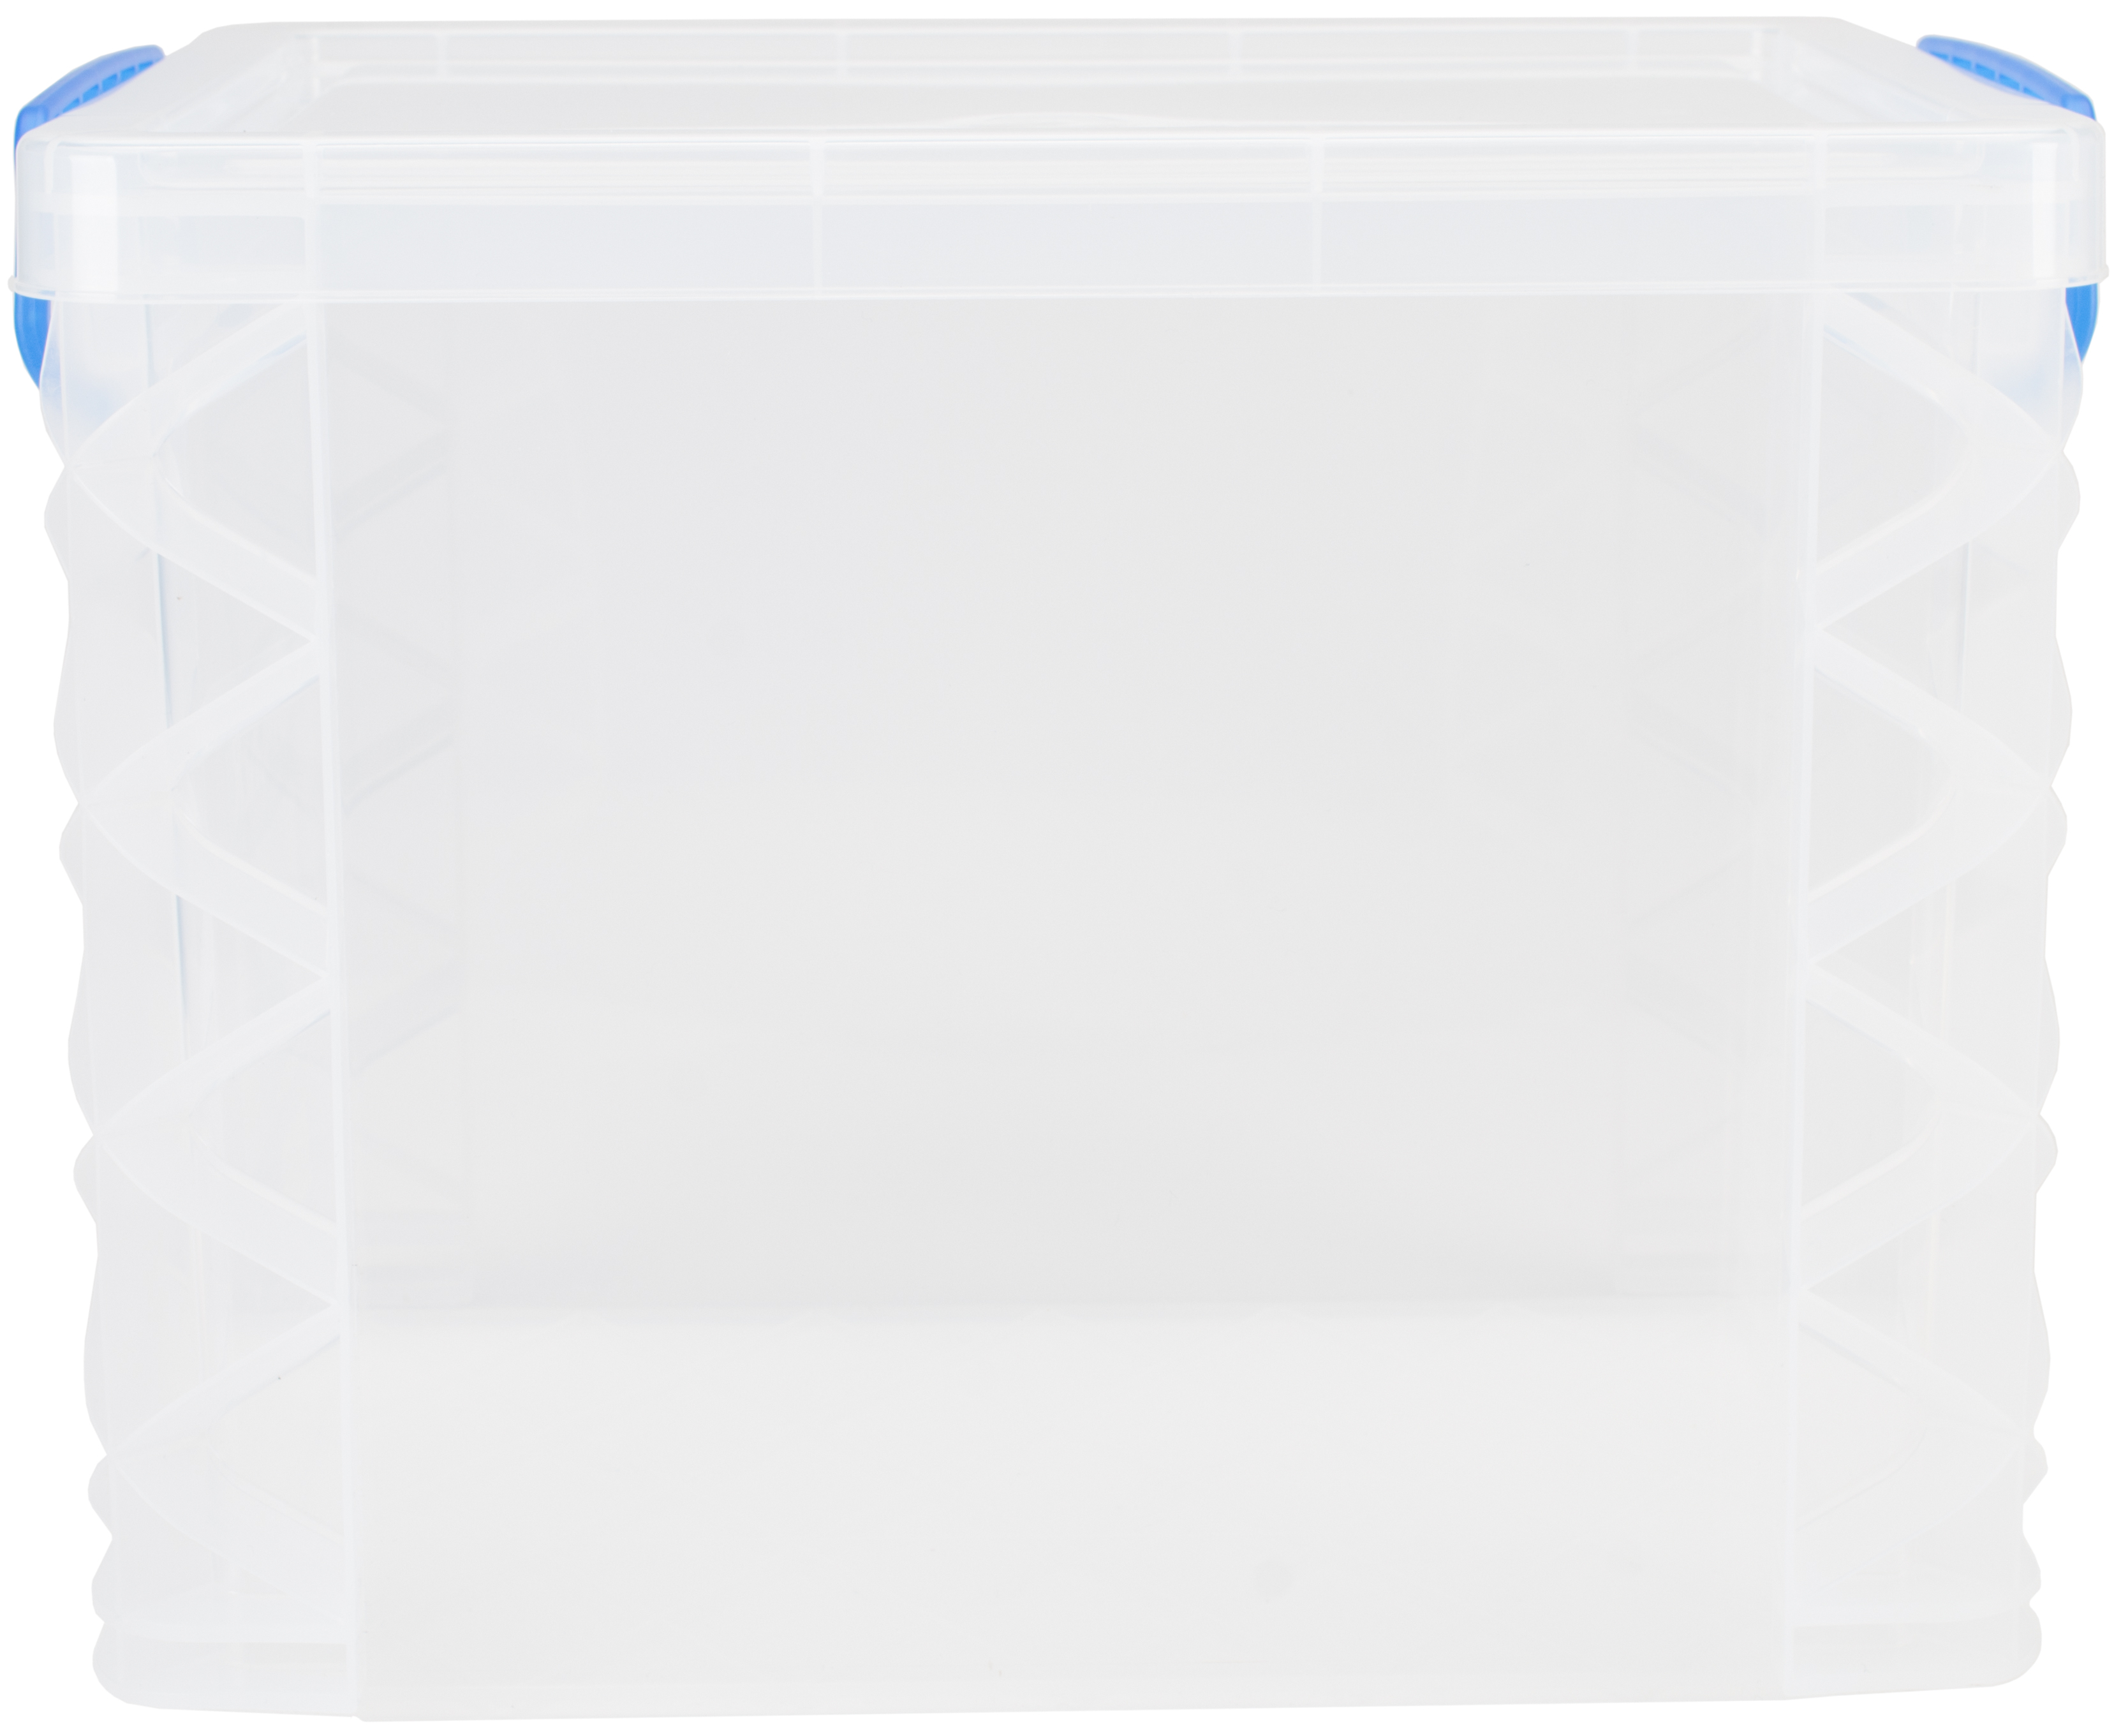 Storage Studios Super Stacker File Box-14.5X10.5X11.25 Clear/Blue Handles